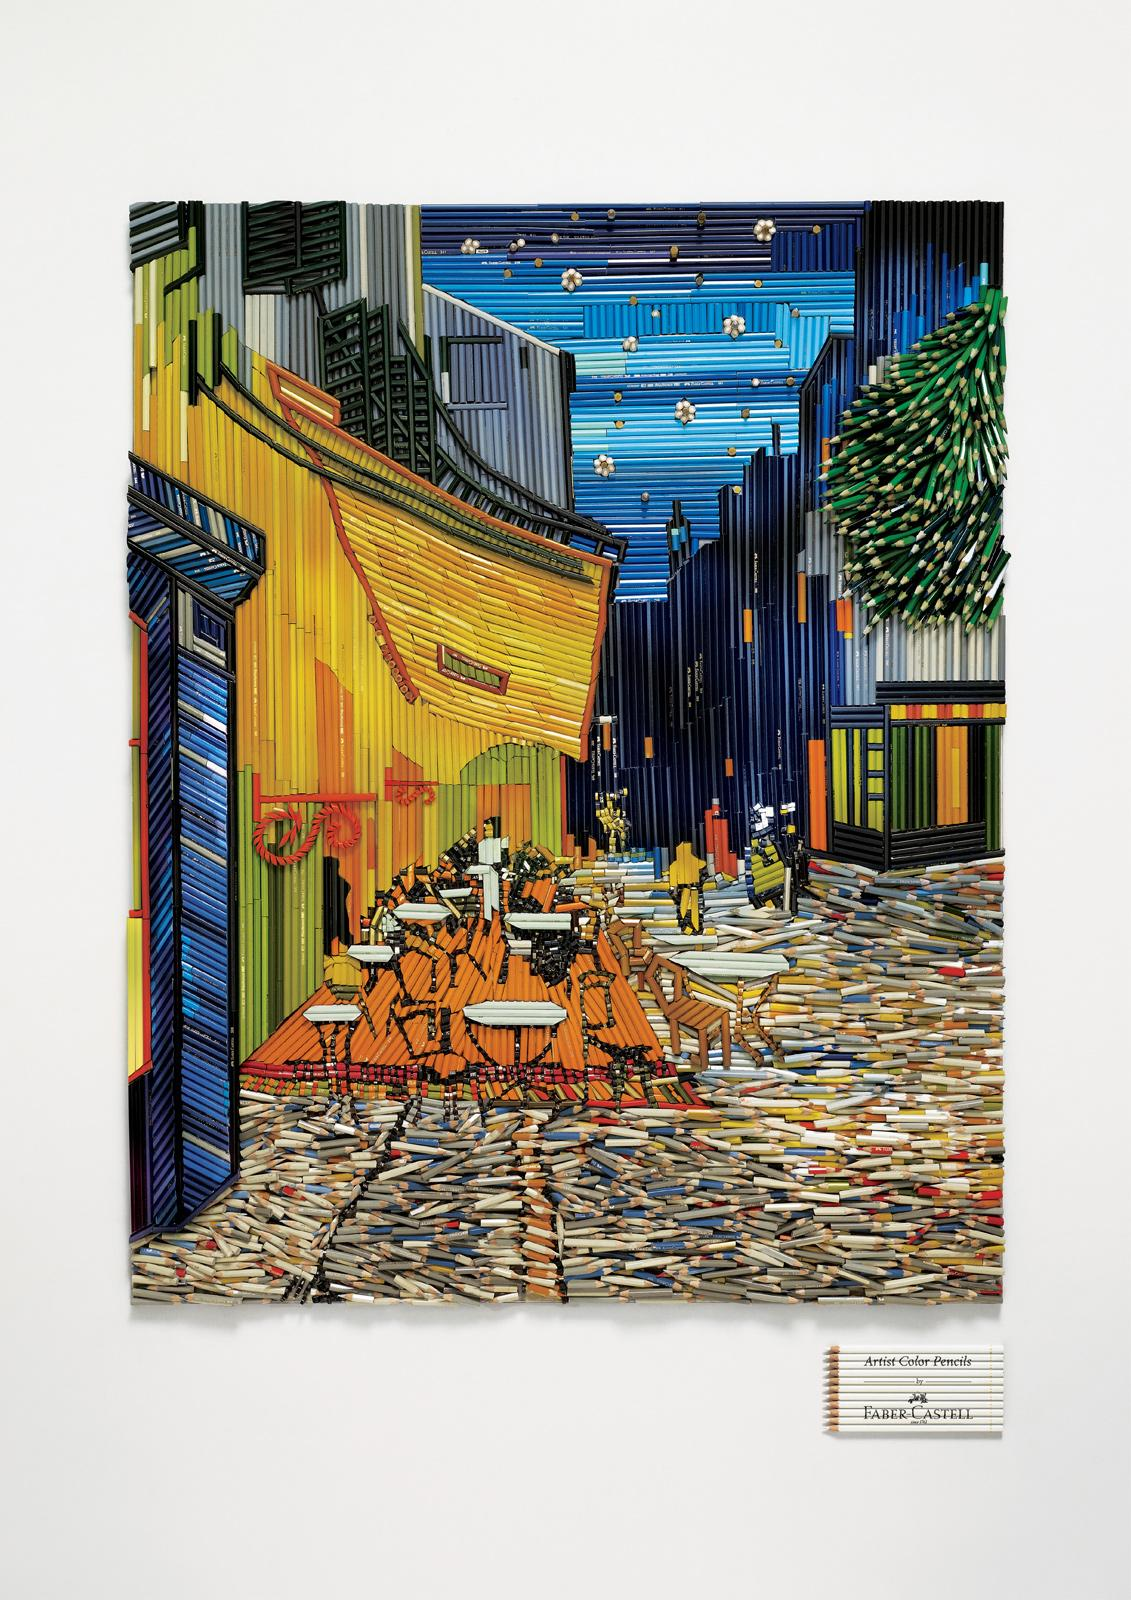 Faber-Castell Print Ad -  Café Terrace at Night